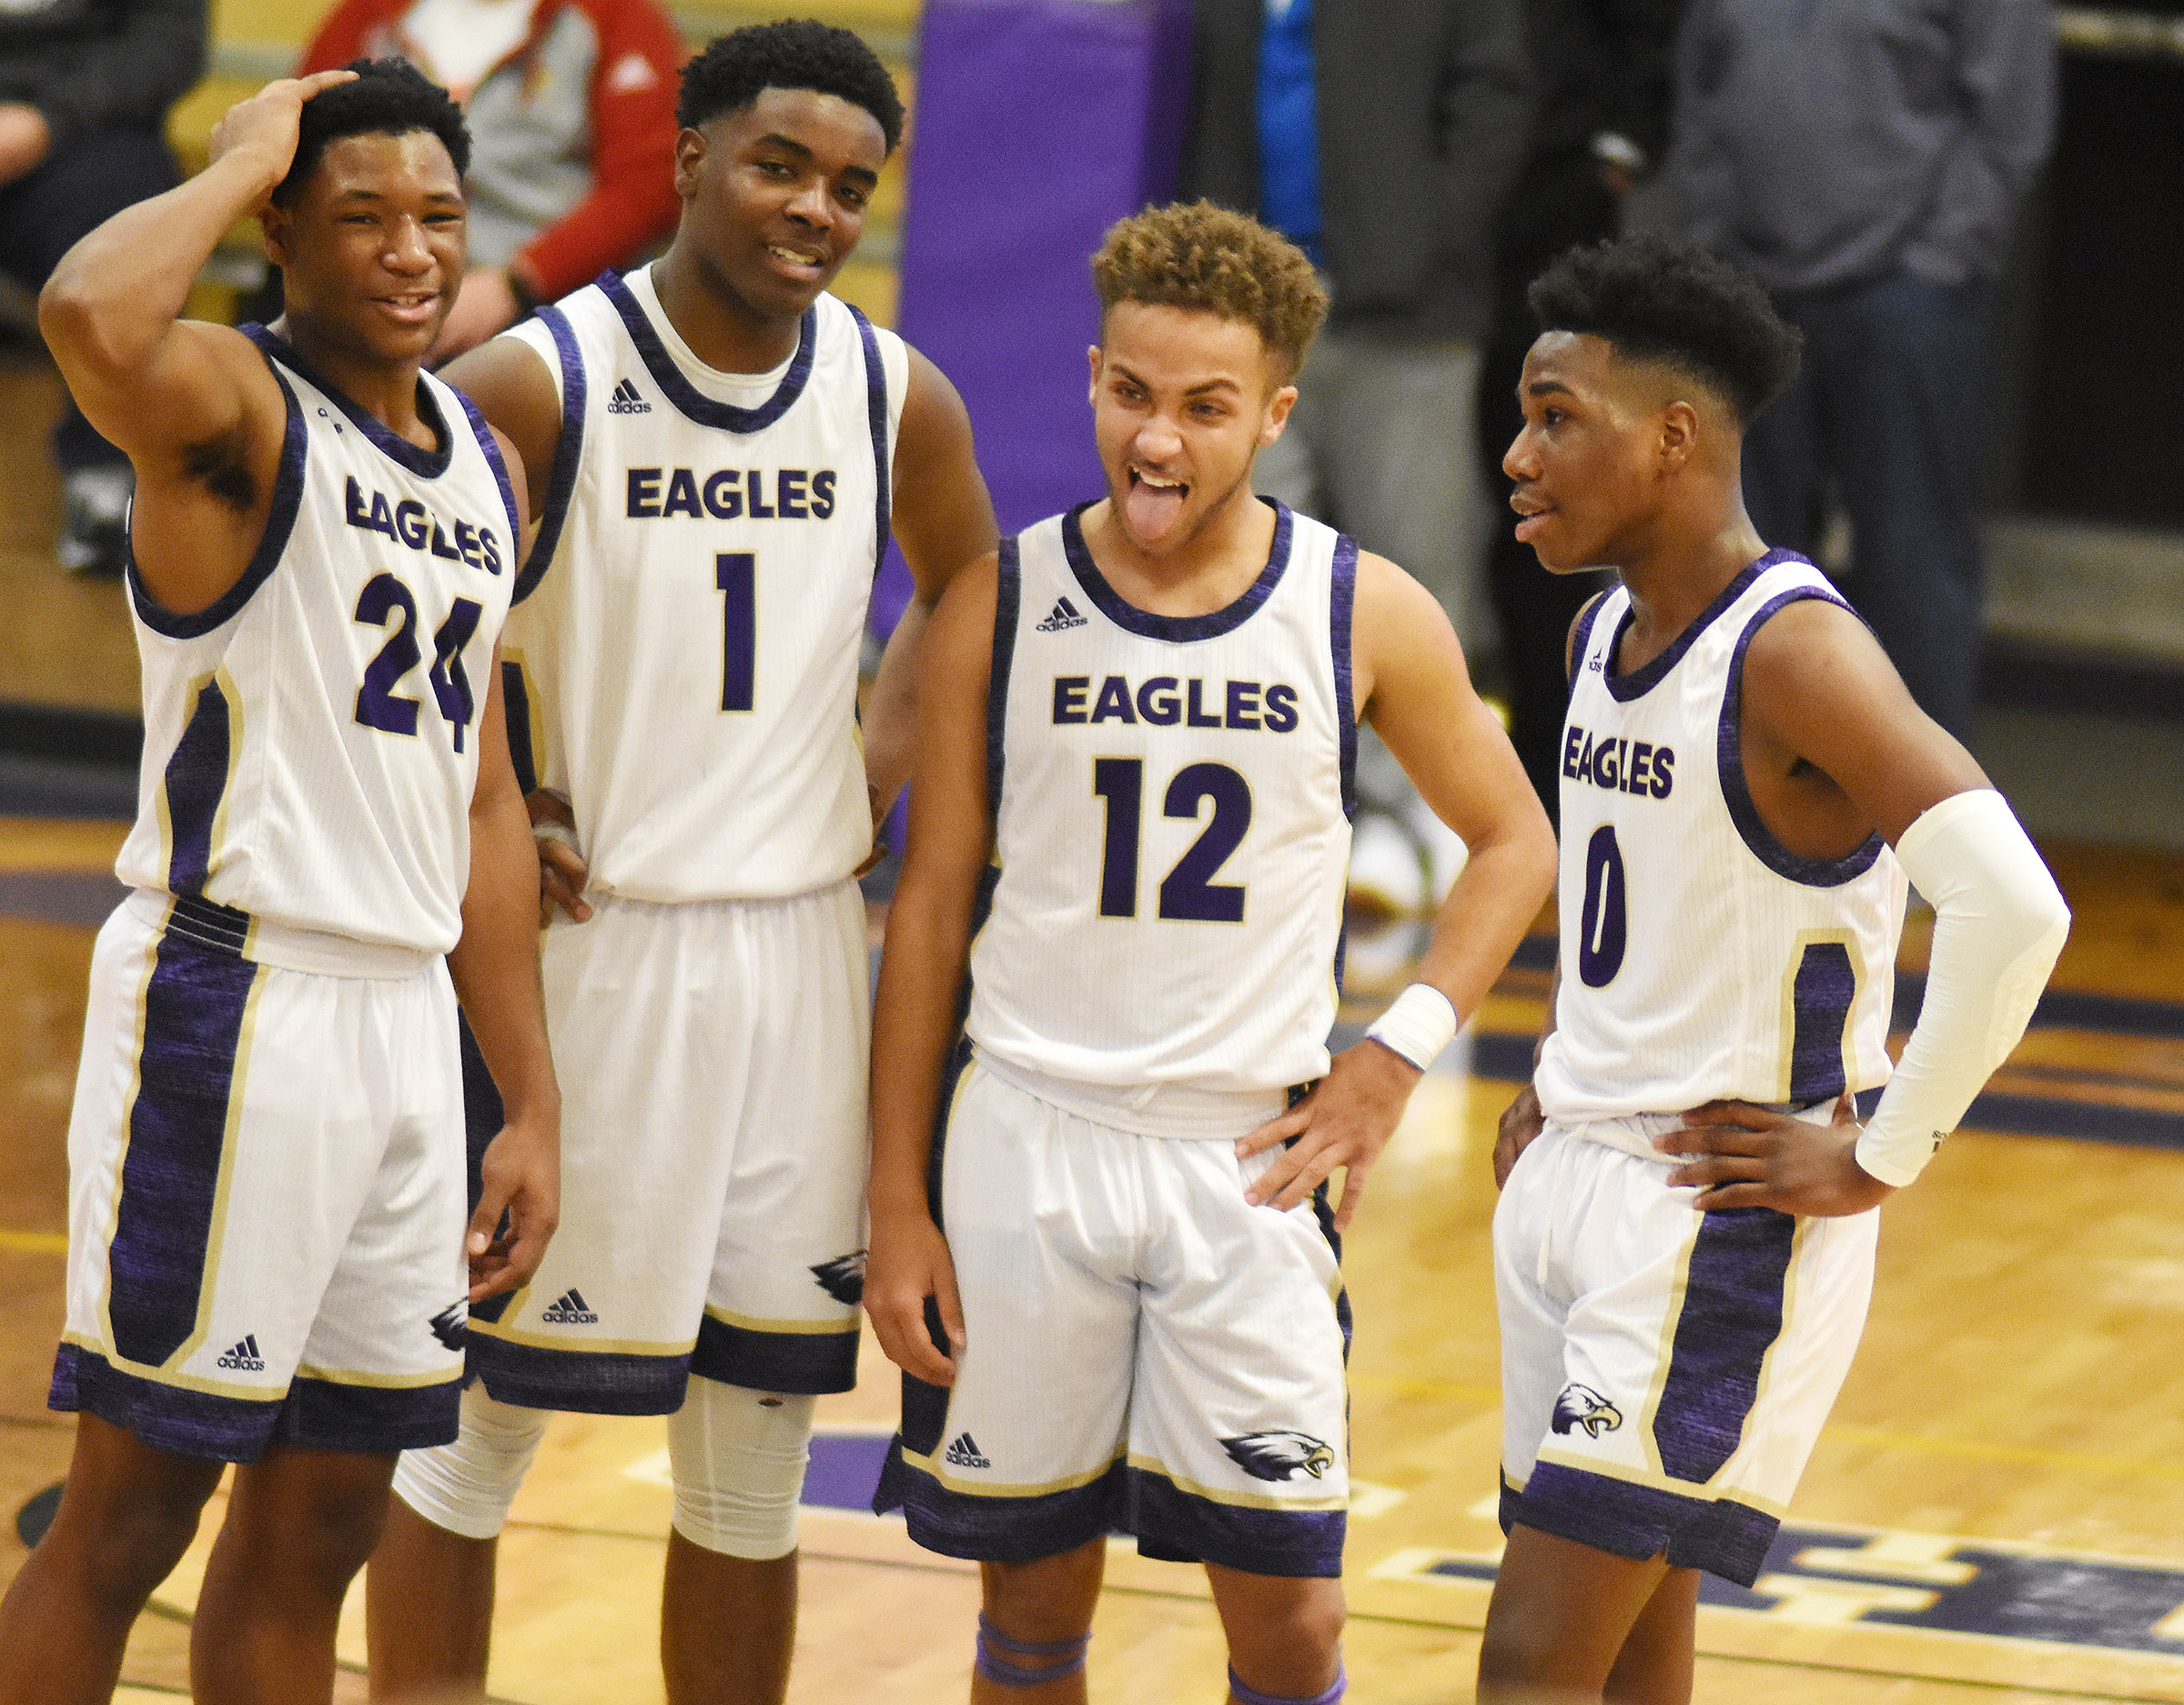 From left, CHS junior Taj Sanders, seniors Chanson Atkinson and Ethan Lay and sophomore Malachi Corley share a laugh during a timeout.